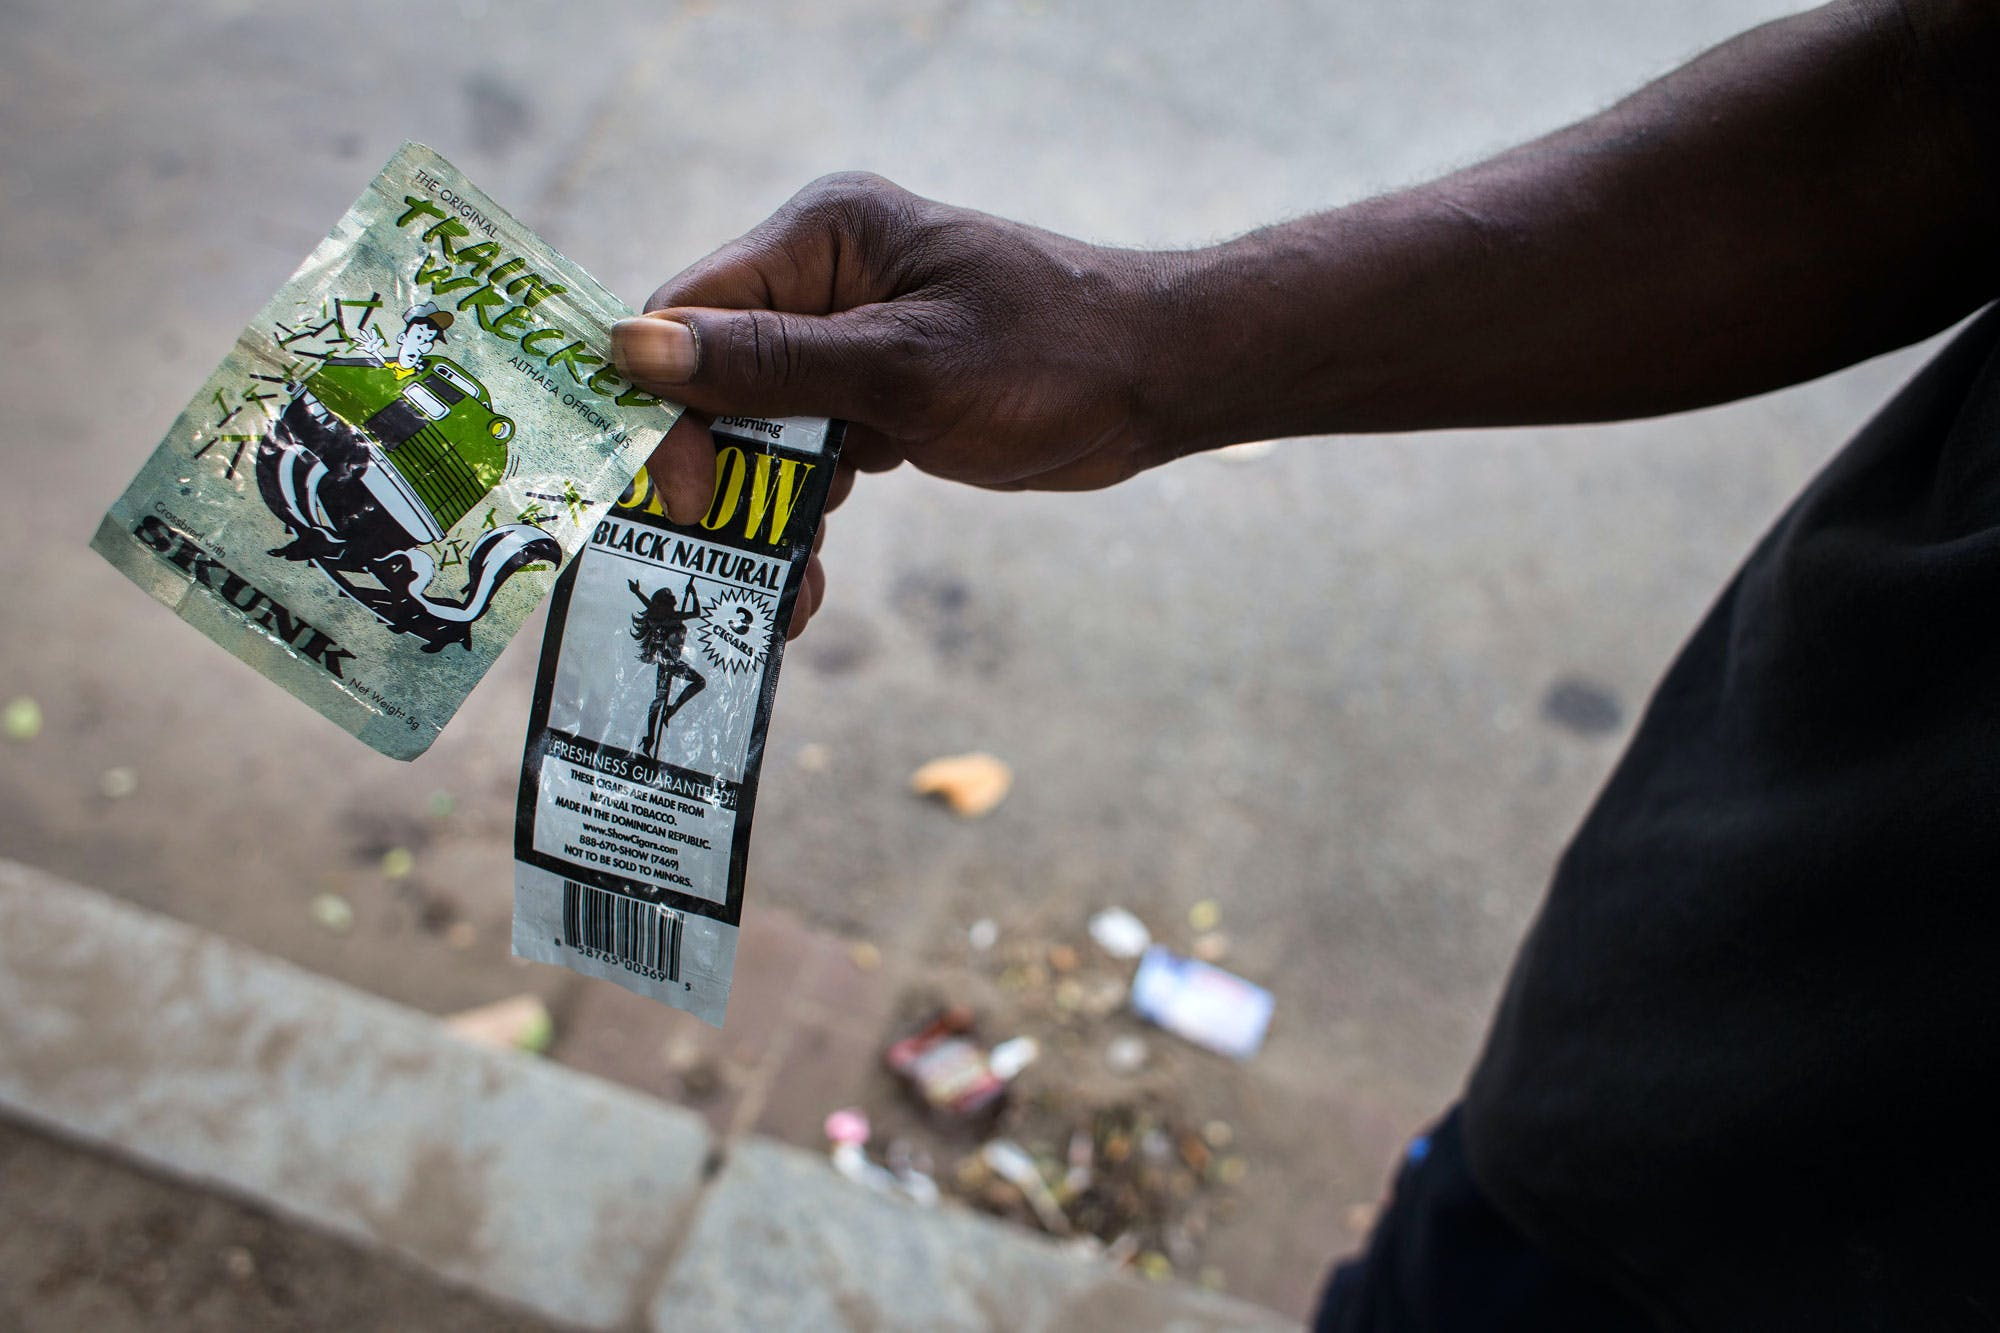 More people hospitalized by synthetic cannabis laced with rat poison This Is How California Is Destroying $350 Million Worth Of Weed